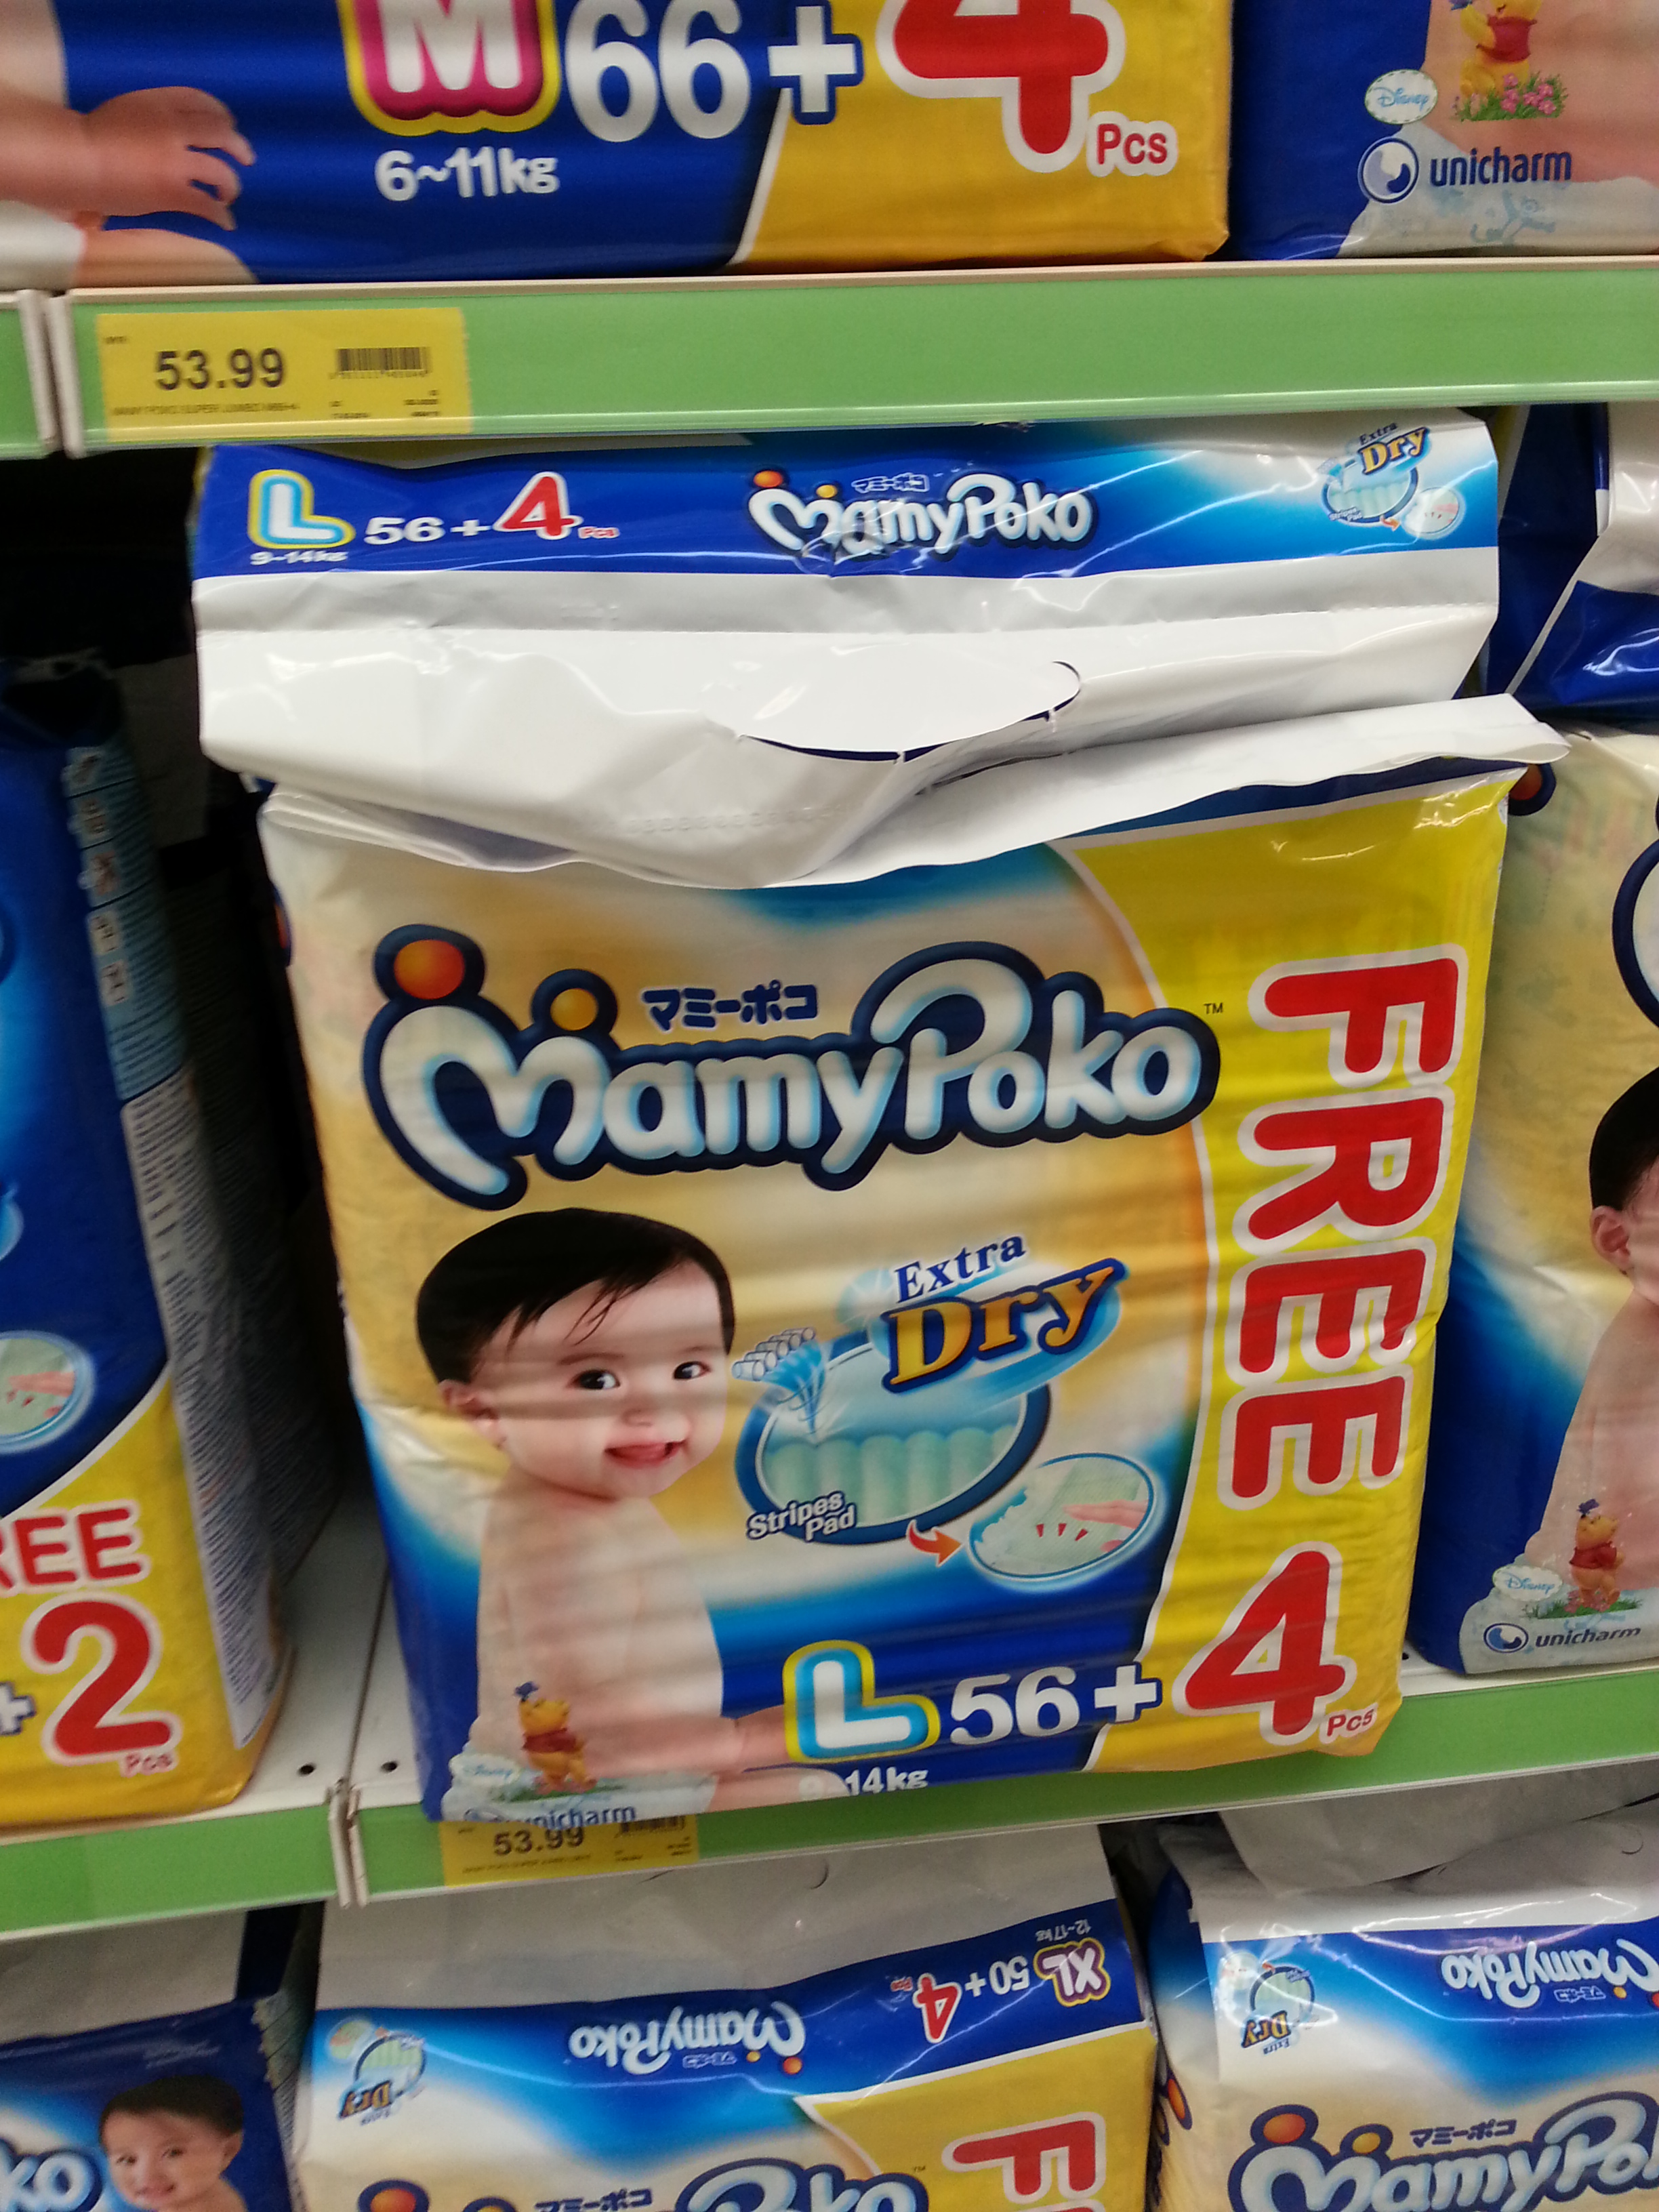 Family Planning 17chipmunks Page 44 Mamypoko Tape Small Packet Usual Price For The Normal Mamy Poko Is 66 Pieces Rm5399 Meaning Rm082